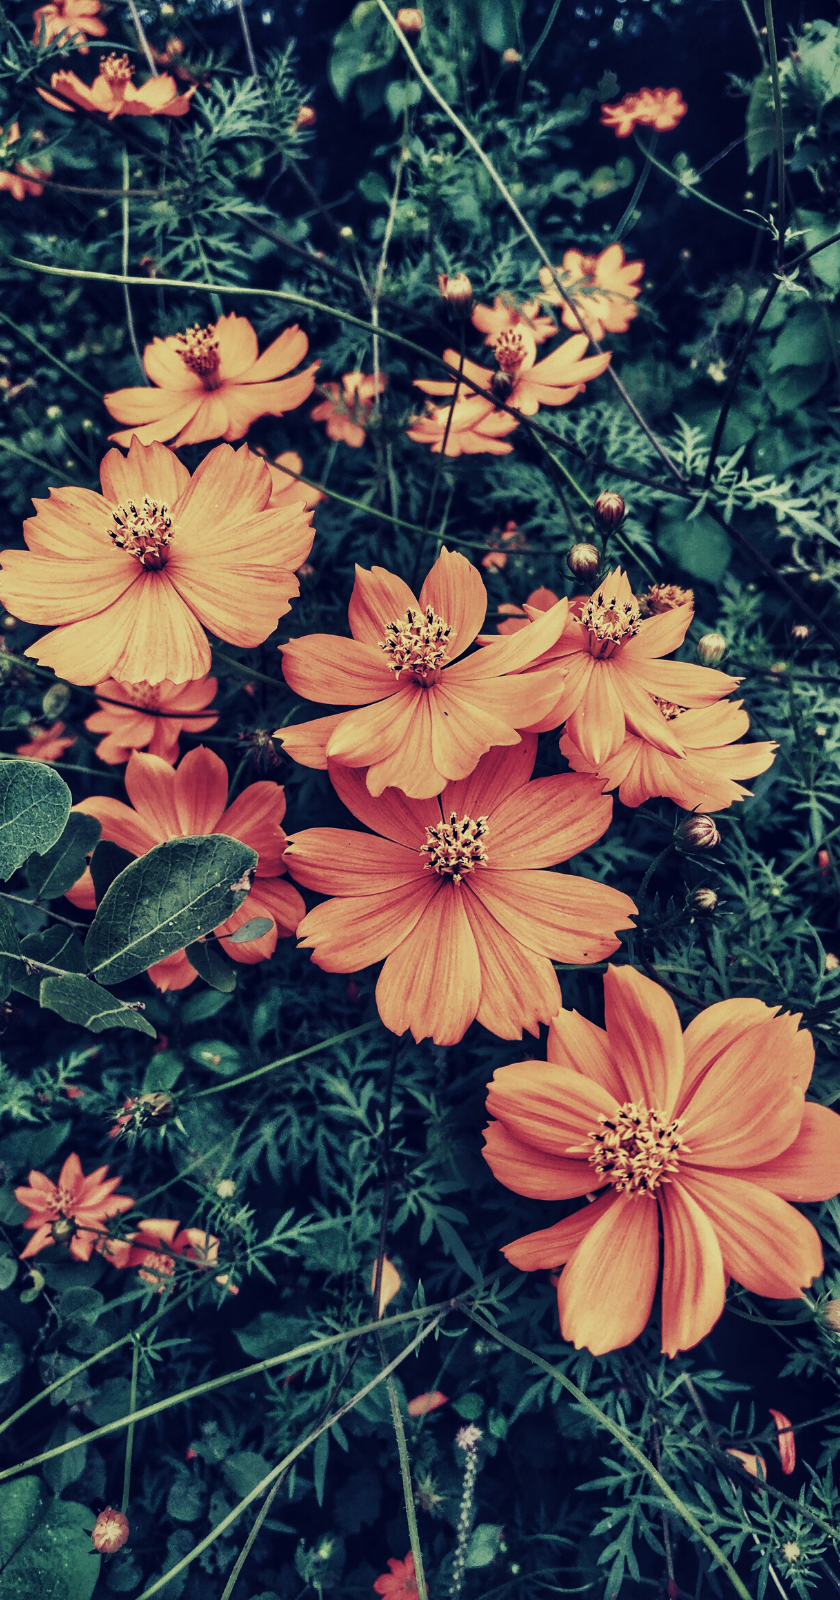 Wallpapers For Iphone 25 Best Floral Wallpapers From Tumblr In 2020 Floral Tumblr Vintage Floral Backgrounds Iphone Wallpaper